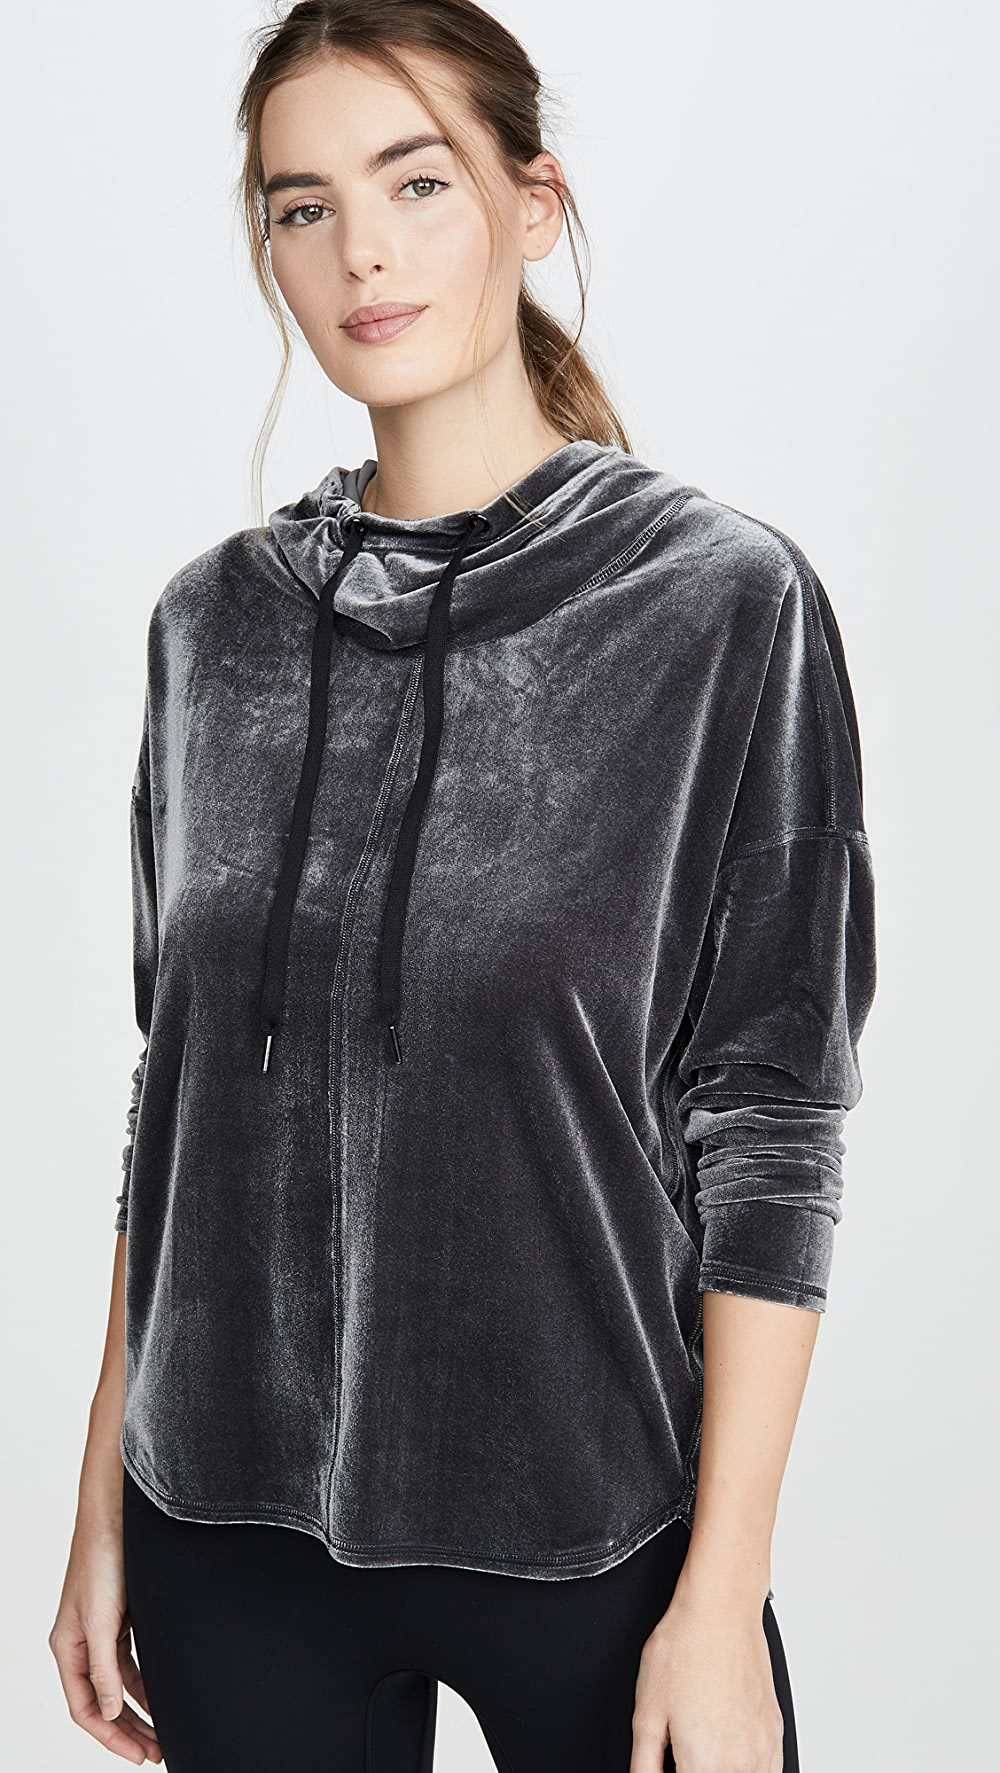 Dependable Prismsport - Inspo Hoodie In Pain